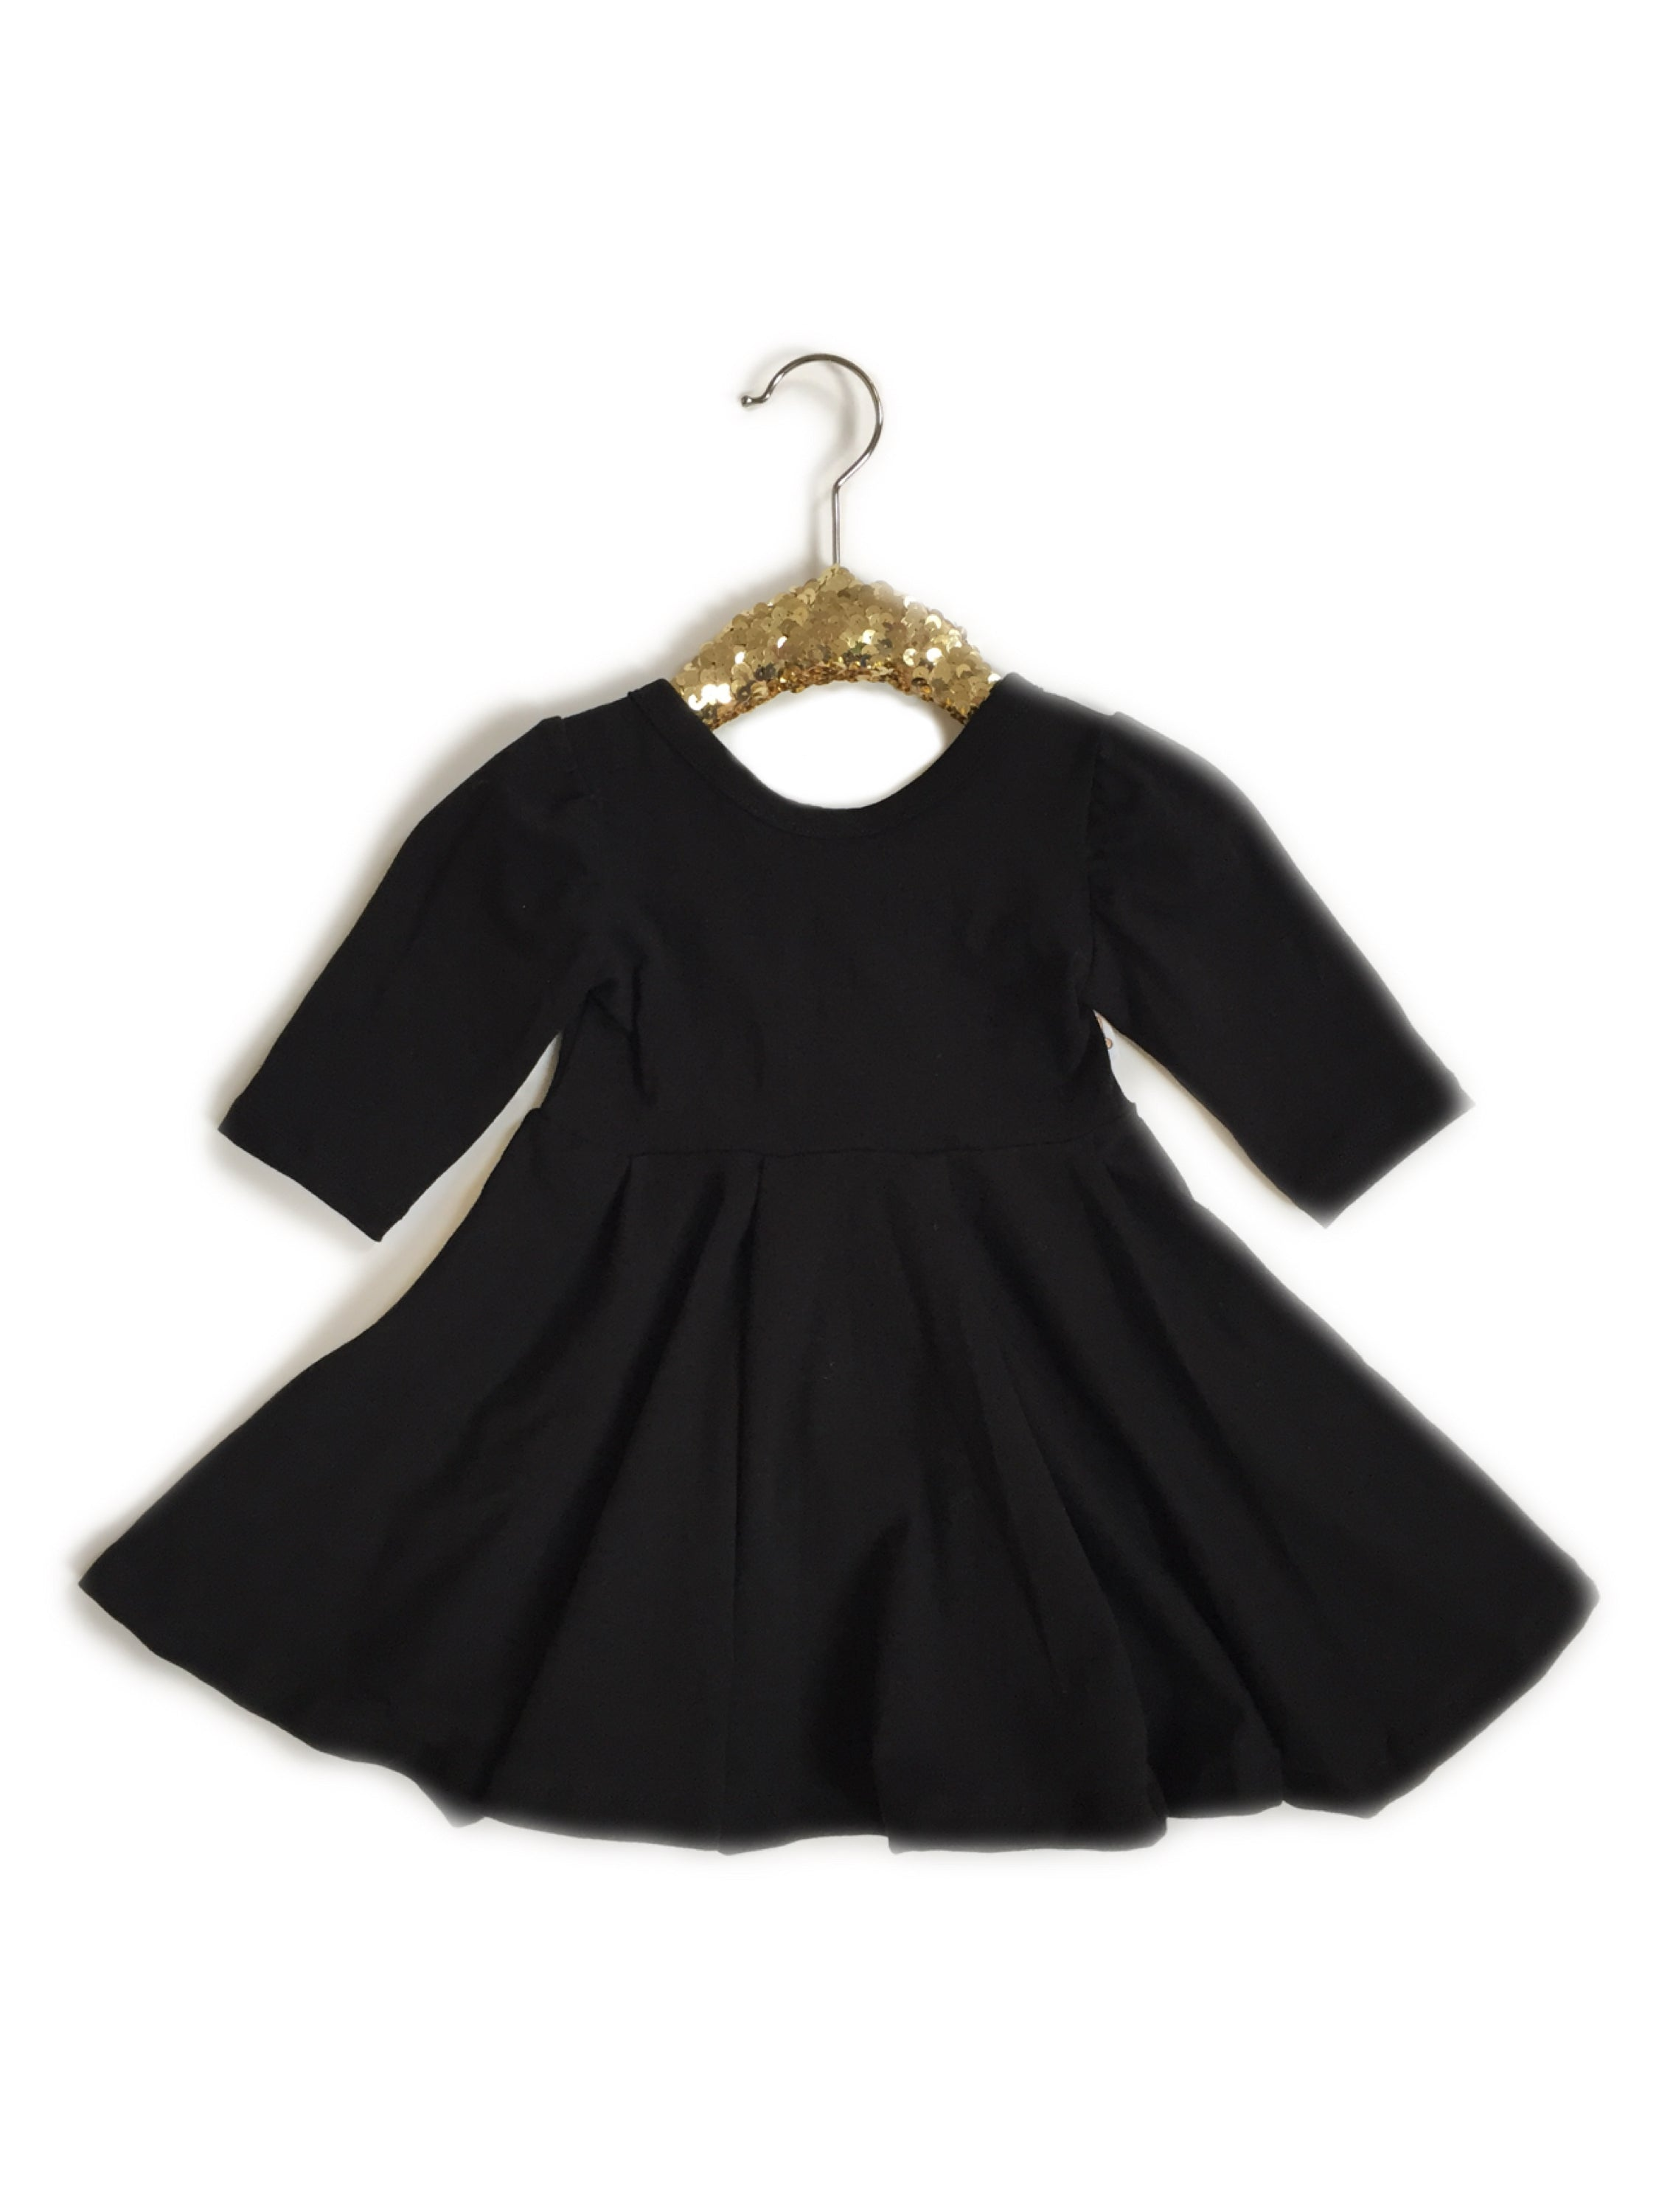 BLACK Twirl Dress (Choose from 3 Sleeve Options)